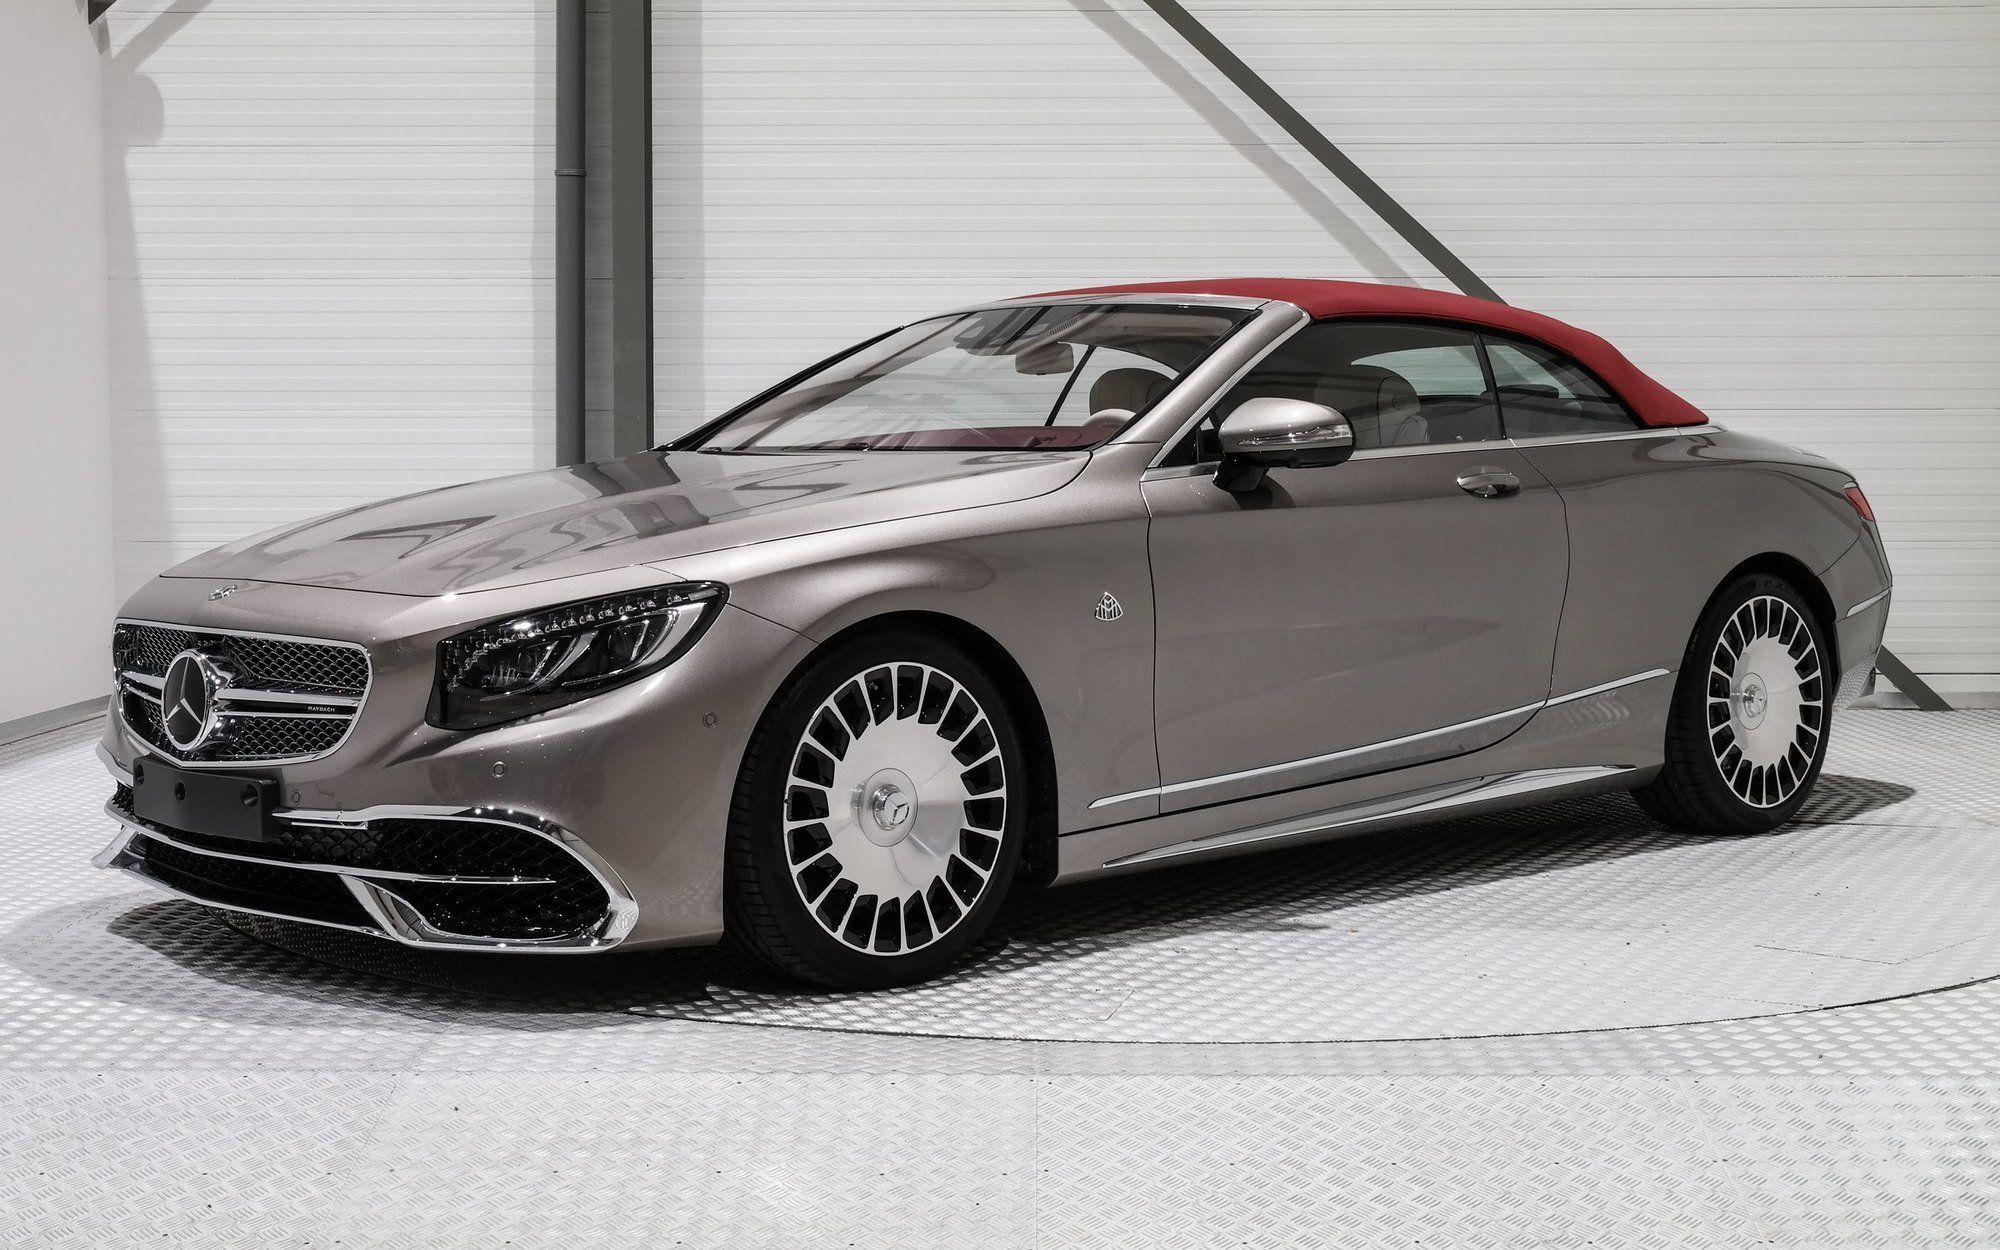 2018 Mercedes Benz Mercedes Maybach S650 Cabrio In Elsloo Netherlands For Sale 10213870 Mercedes Benz Maybach Maybach Mercedes Maybach